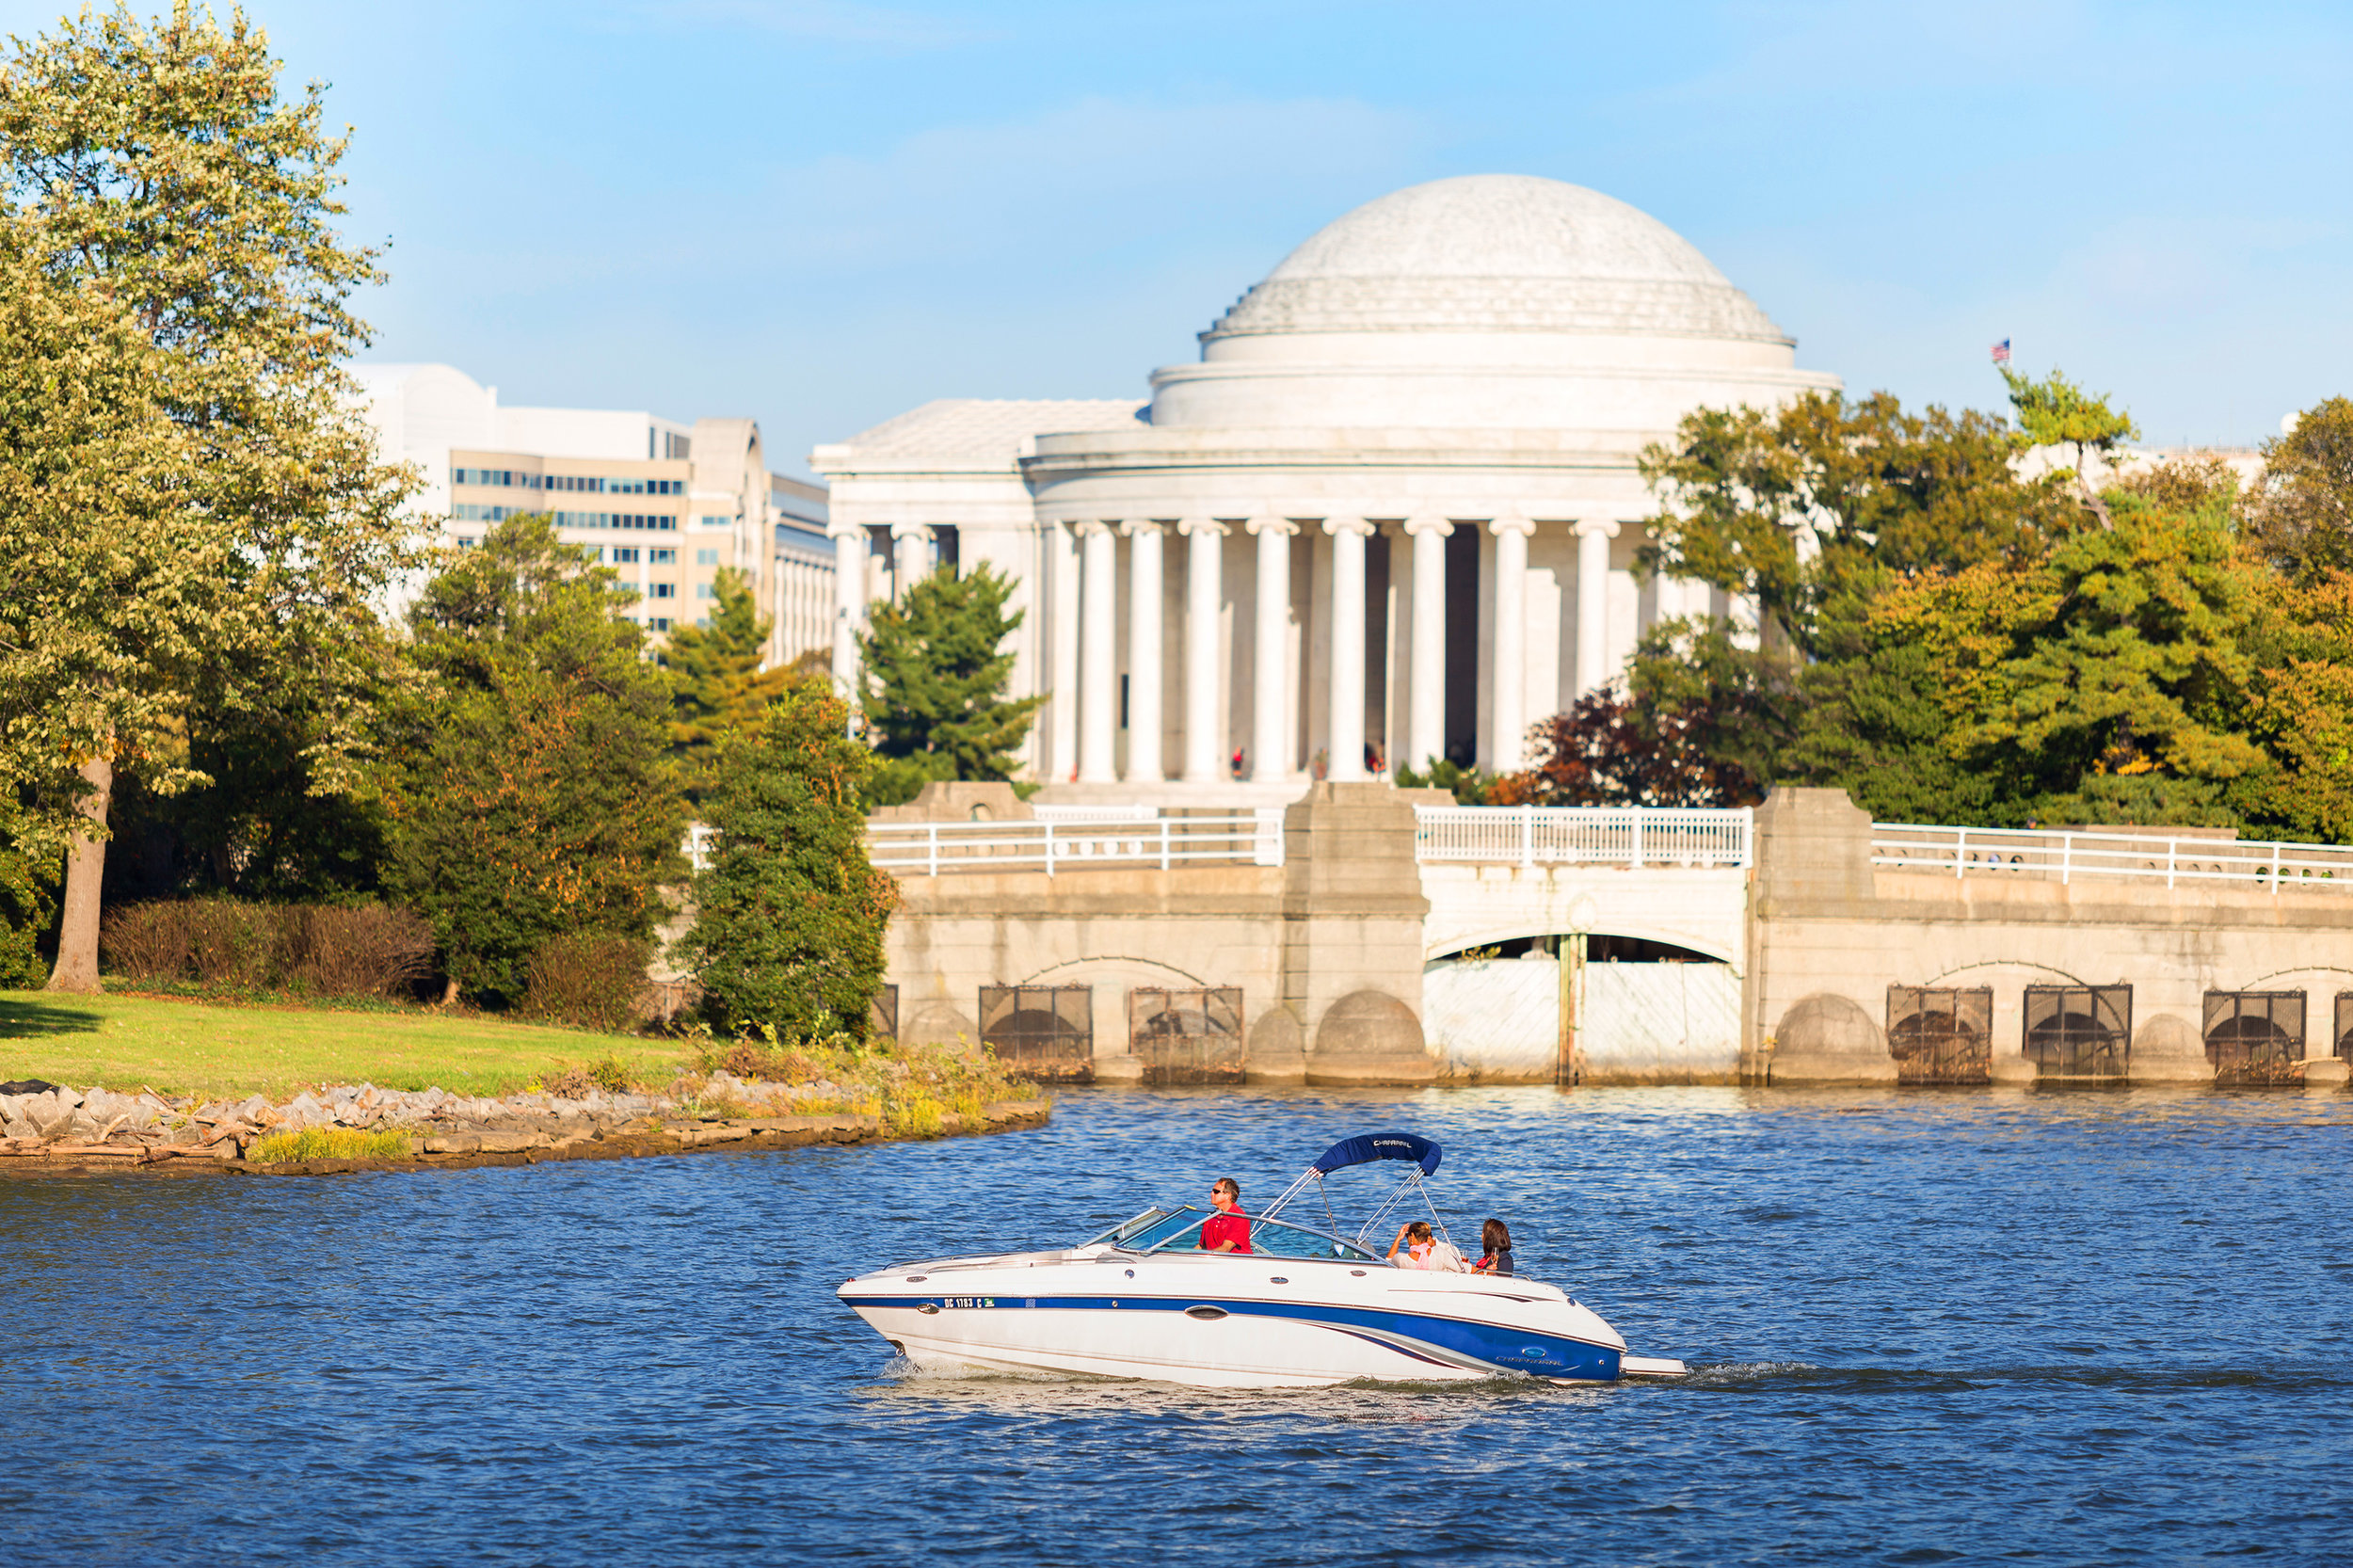 Idling-by-the-Jefferson-Monument.jpg